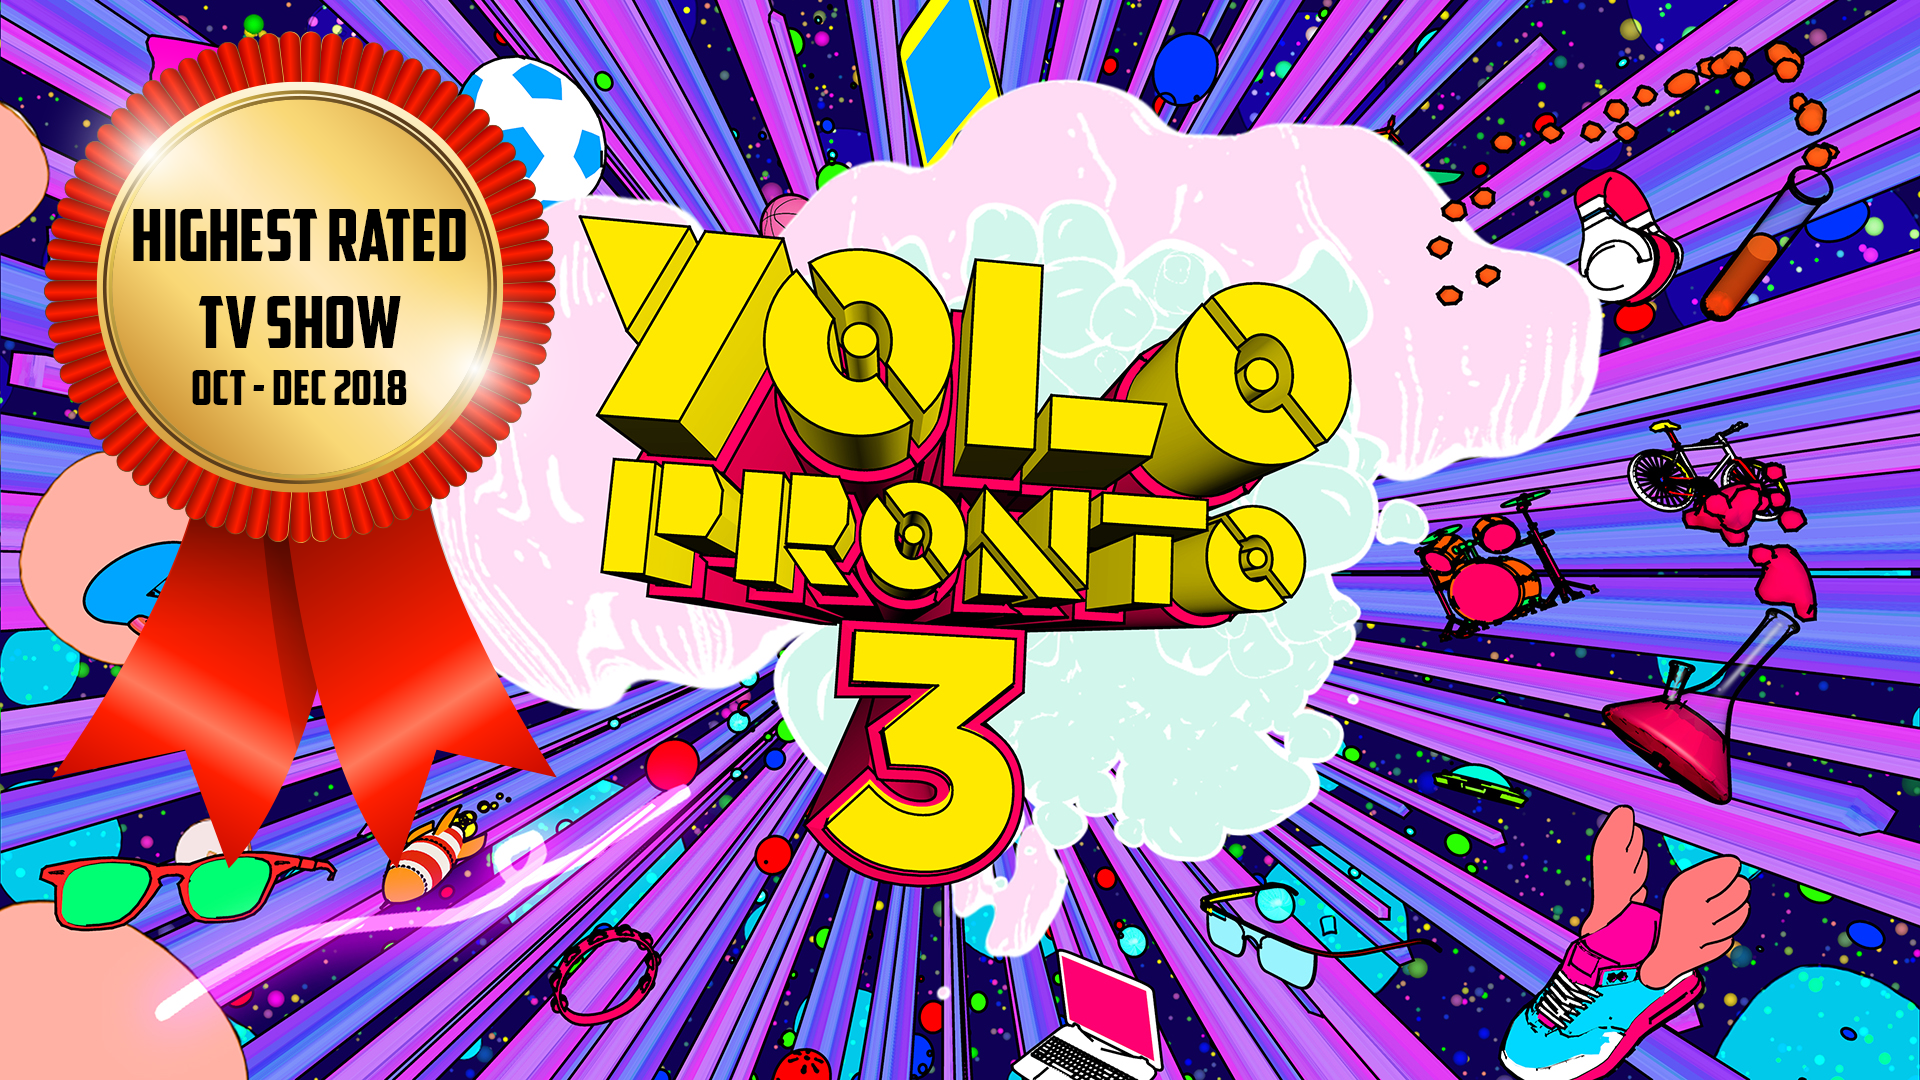 Yolo Pronto 3 highest rated tv show